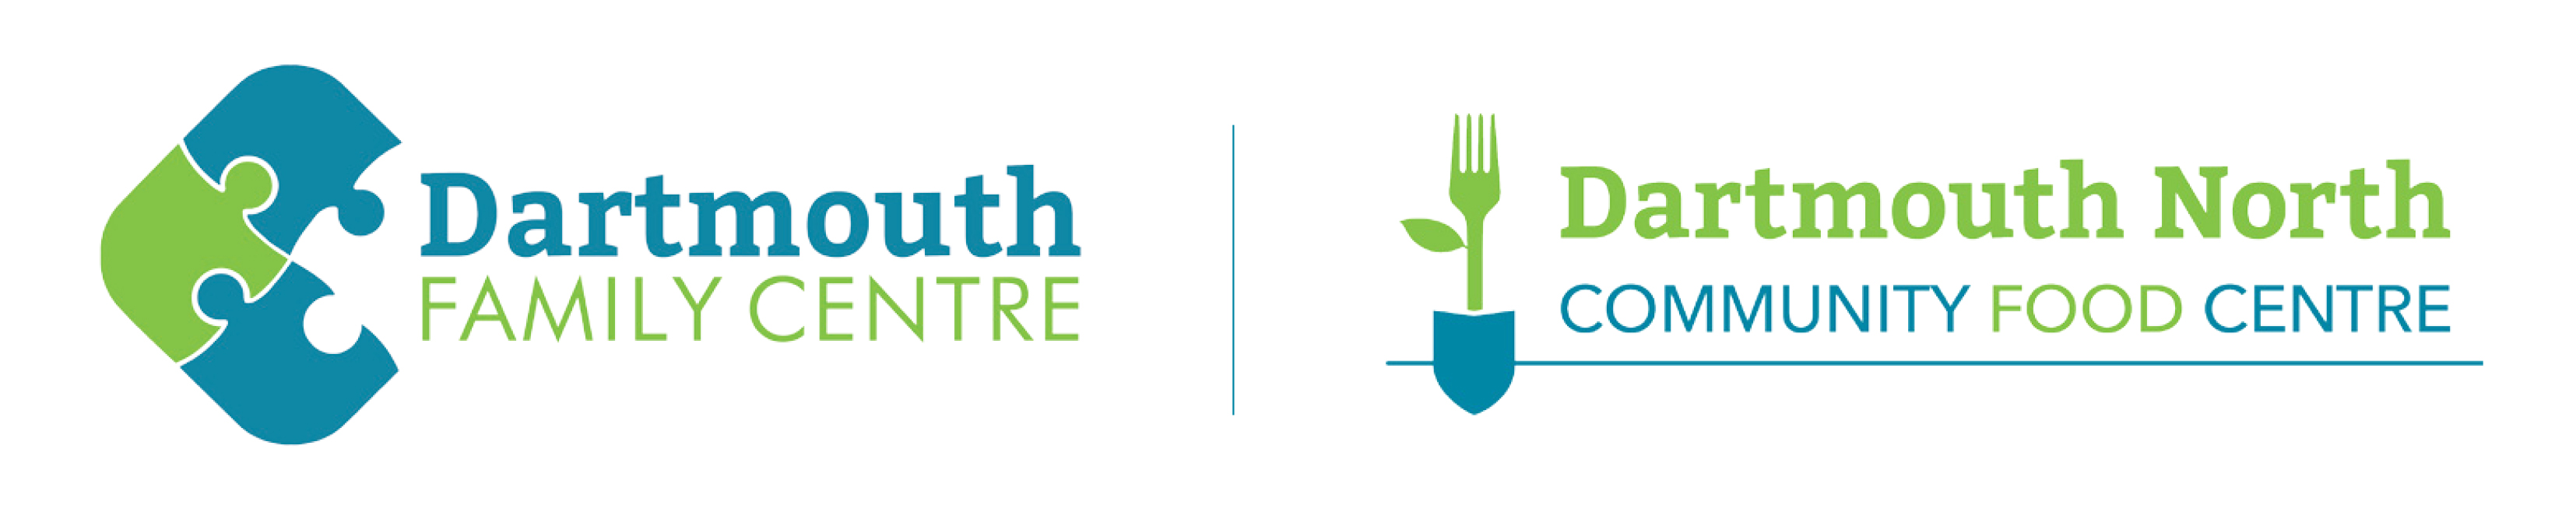 Dartmouth Family Centre & Dartmouth North Community Food Centre Logo